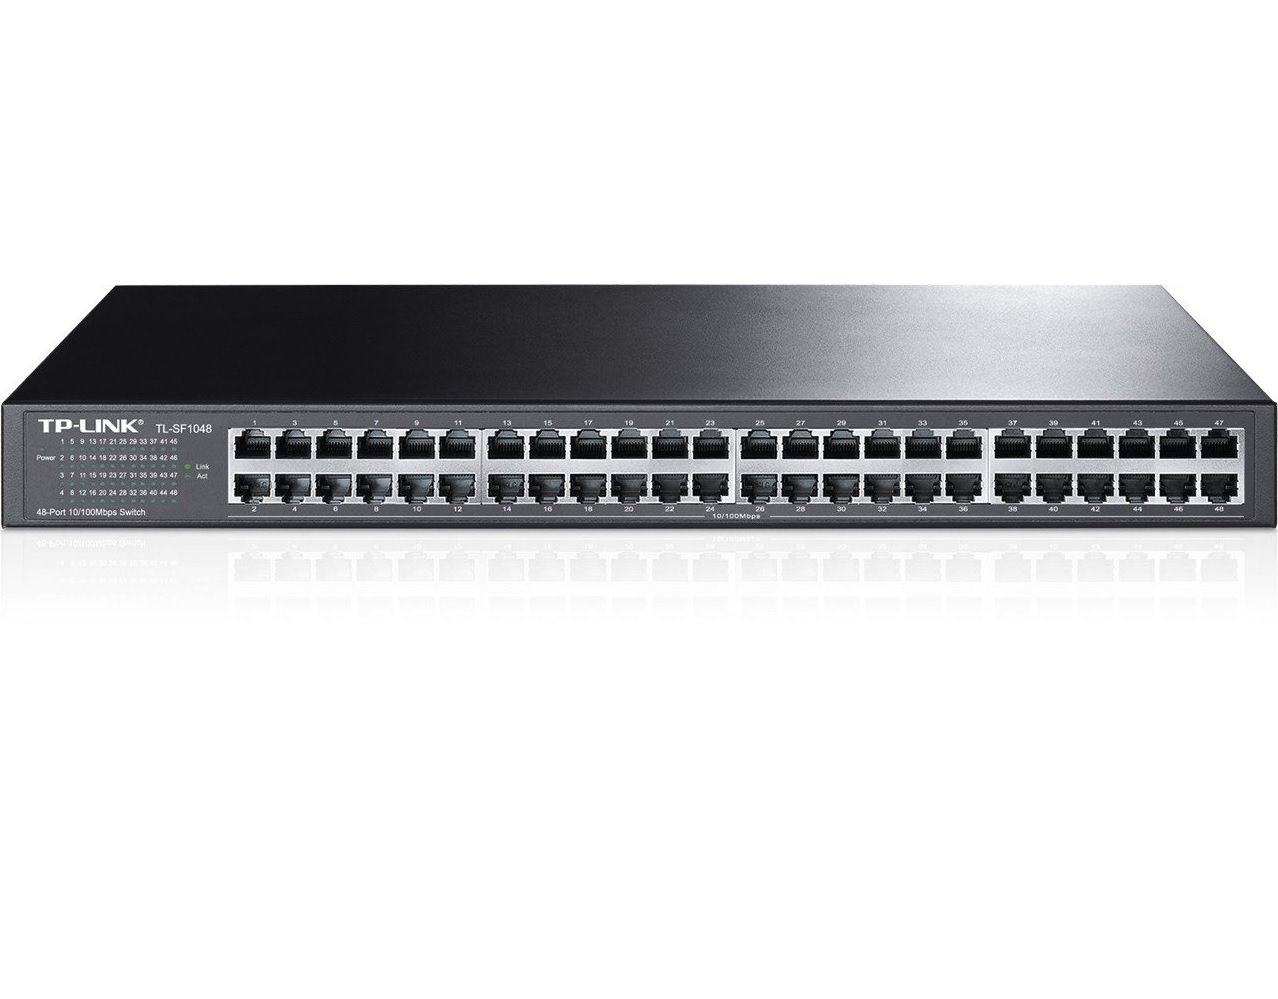 "Switch TP-Link TL-SF1048 switch 48xTP 10/100Mbps 19""rackmount"